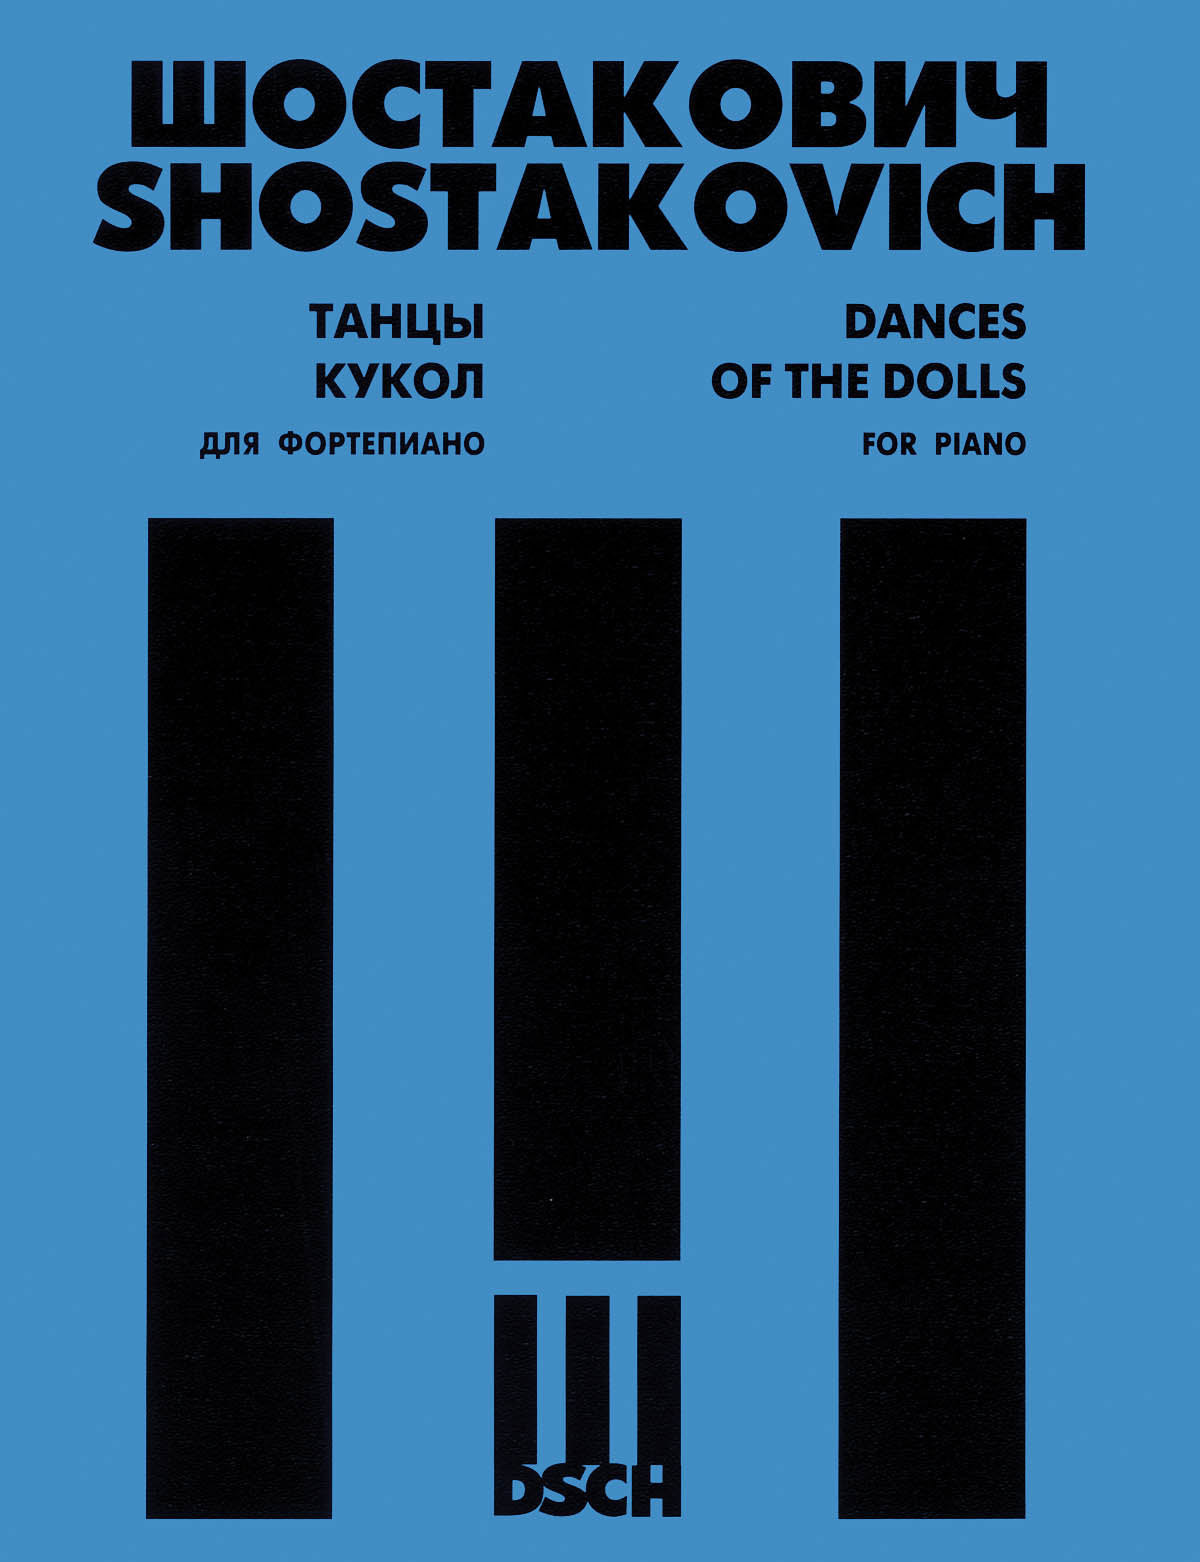 Shostakovich: Dances of the Dolls